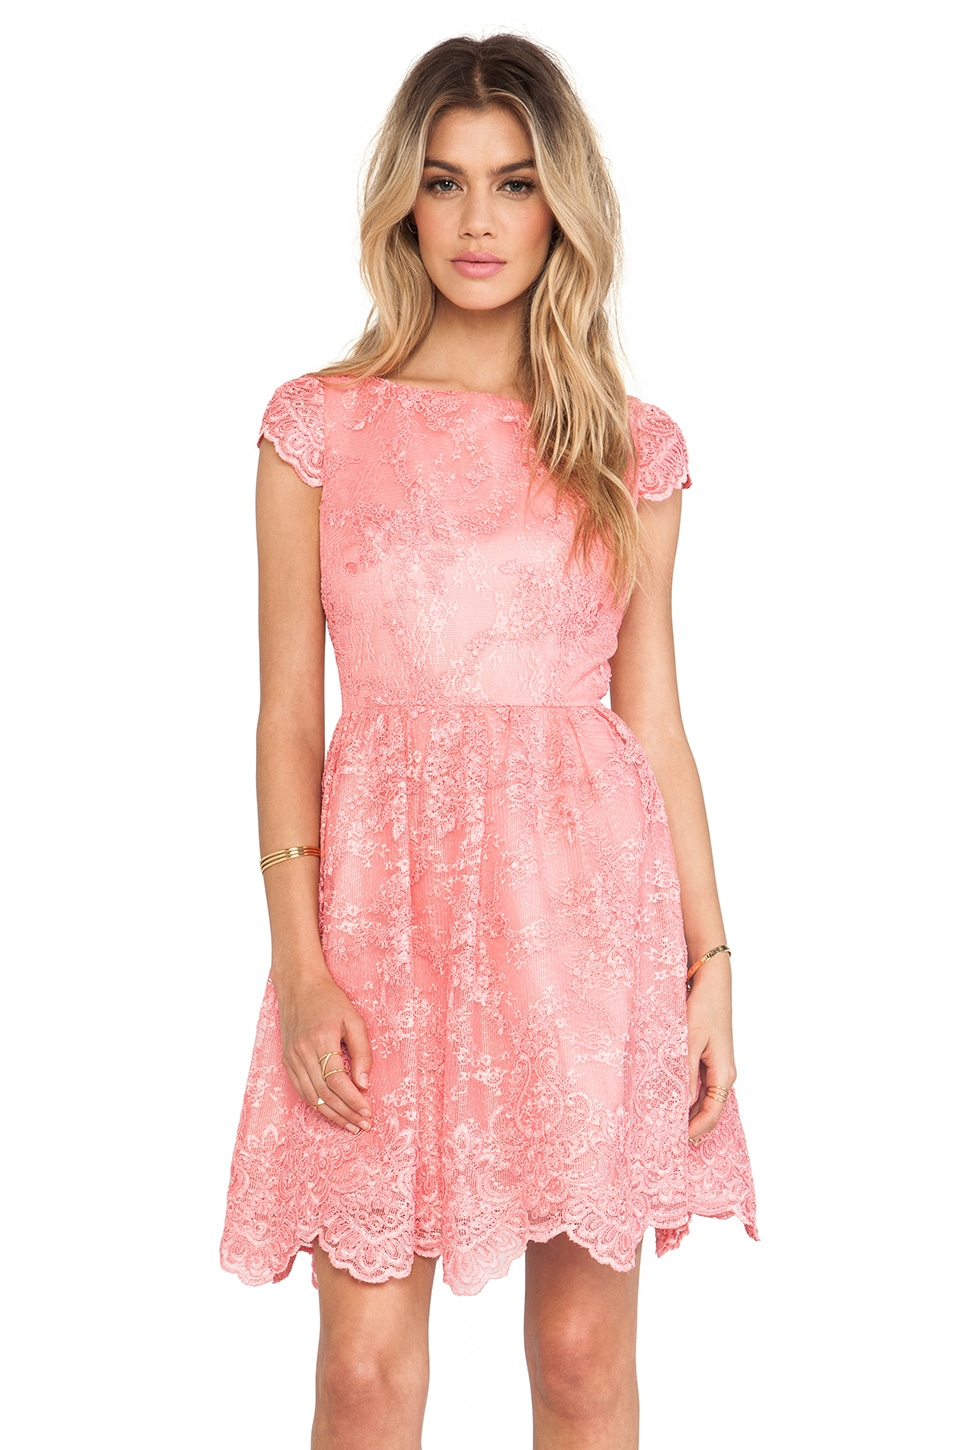 Alice + Olivia Zenden Scallop Edge A-Line Dress in Pink Iciing